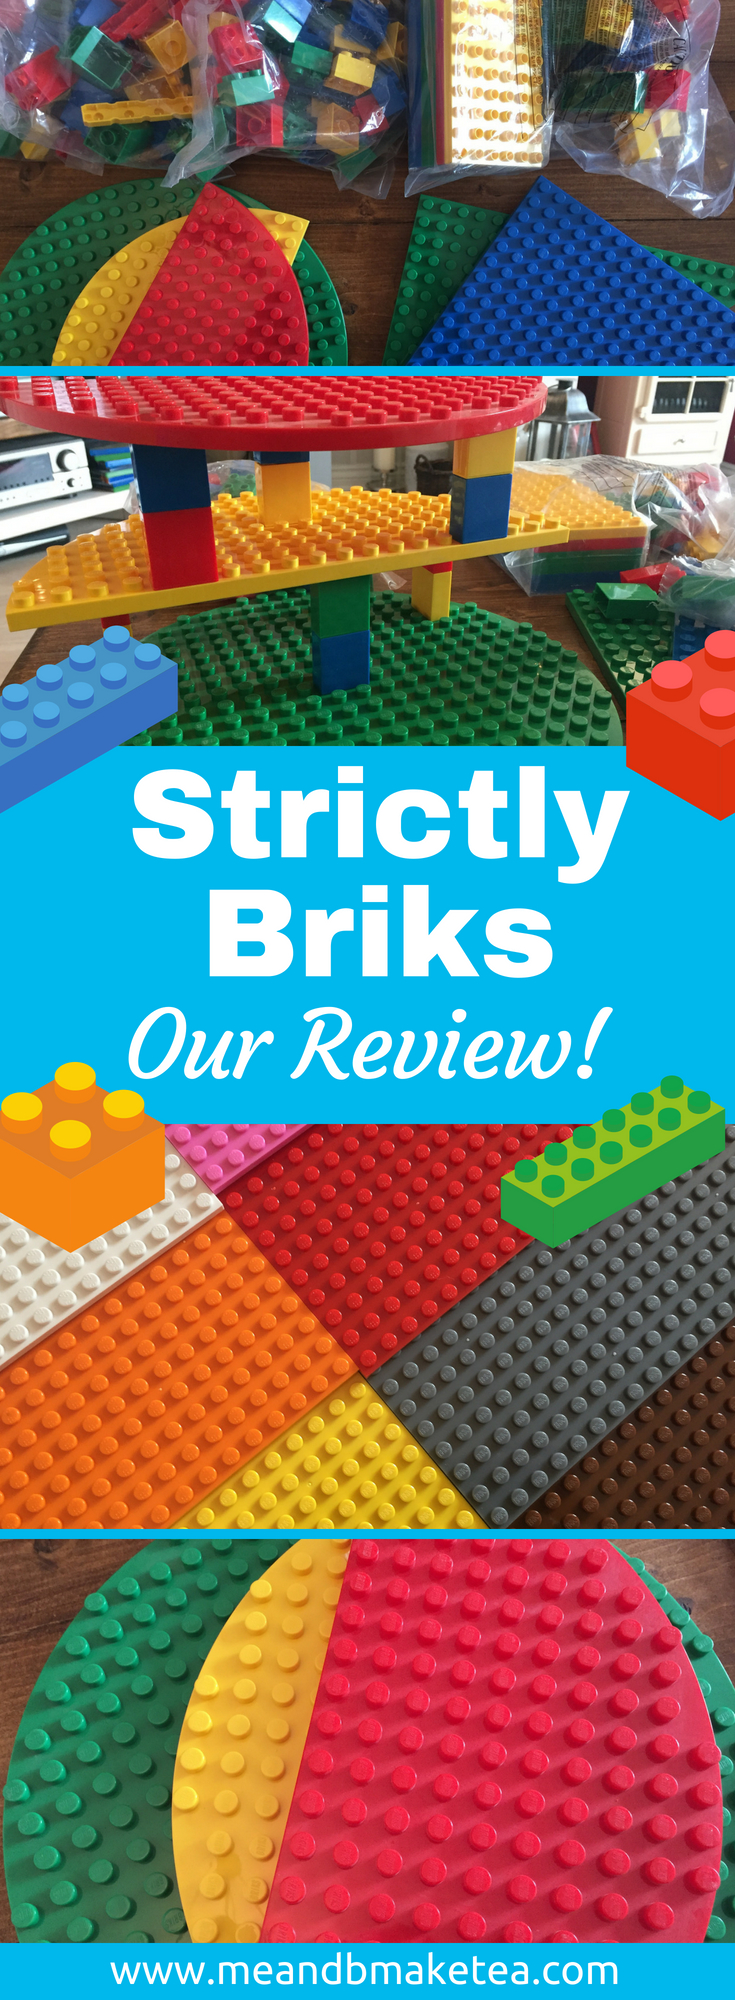 Strictly Bricks Review pinterest thumb